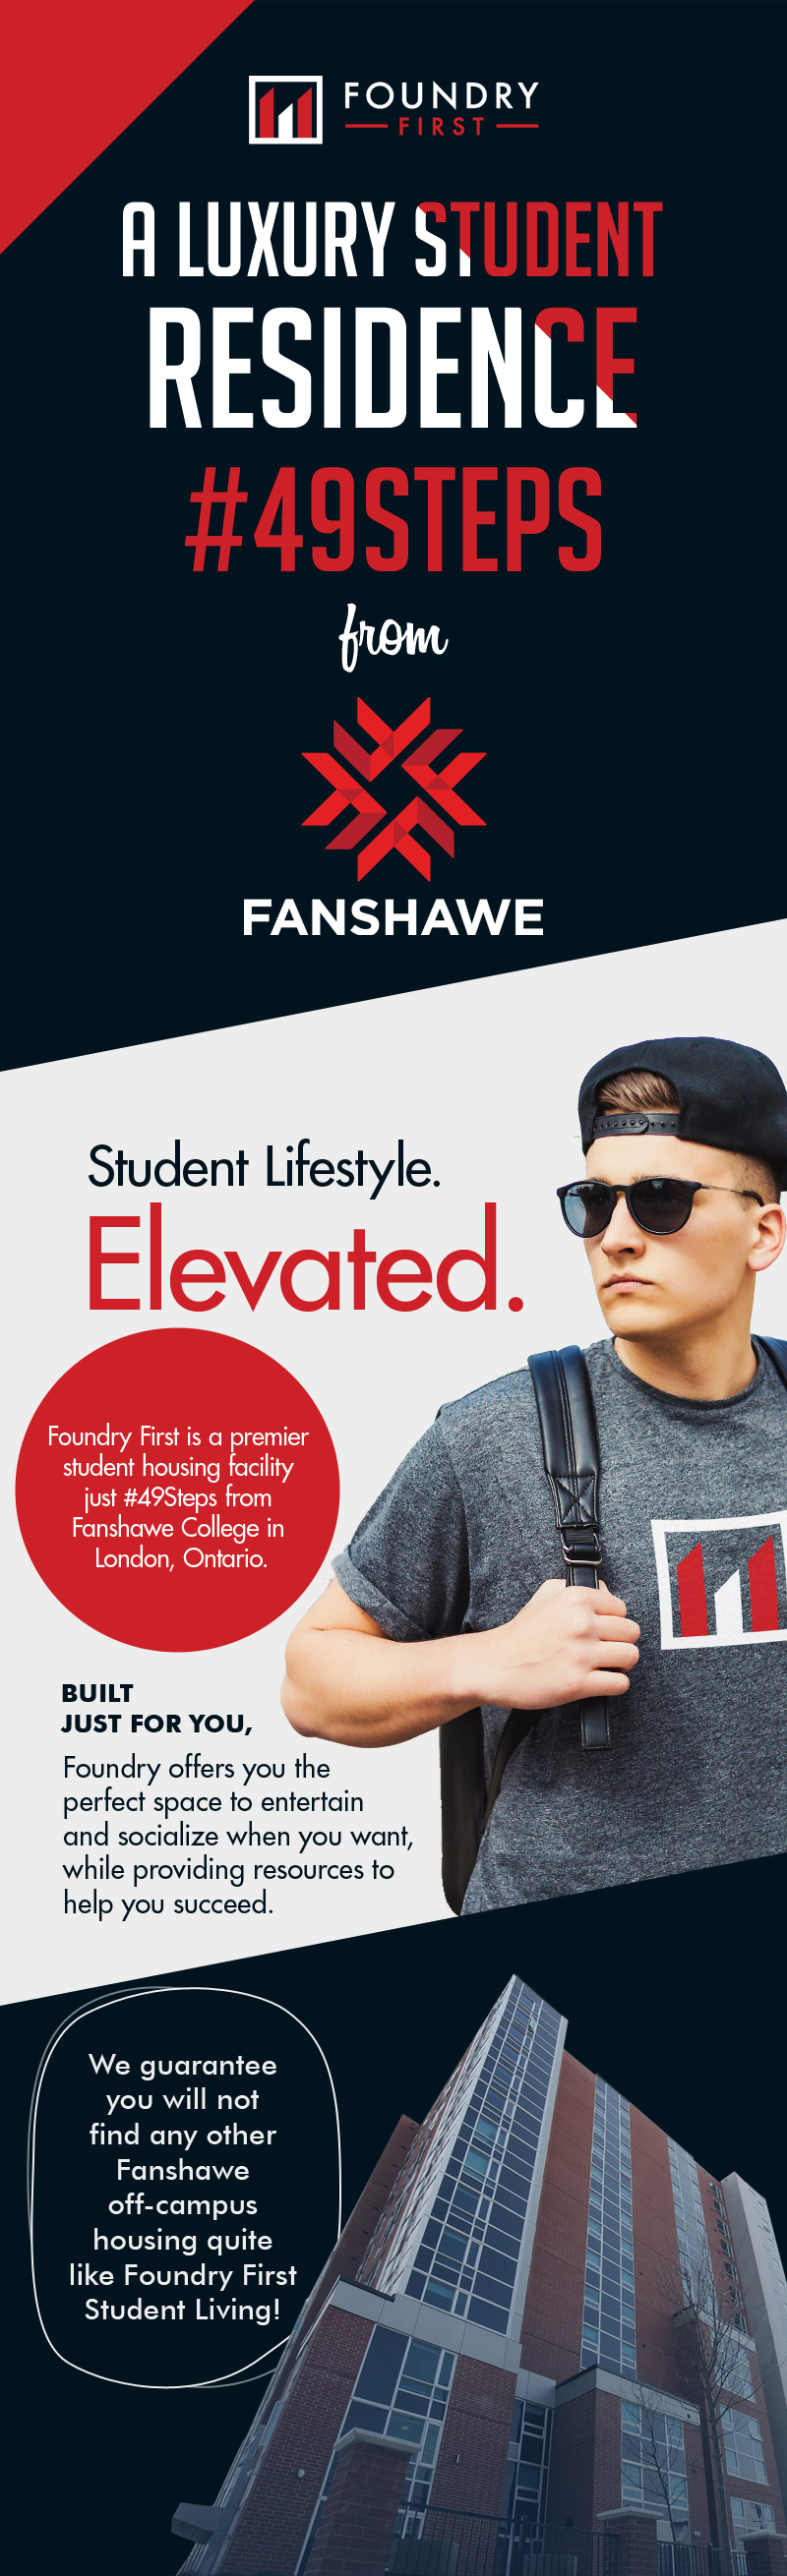 Foundry First – Your Ultimate Source for an Off-Campus Residence in London